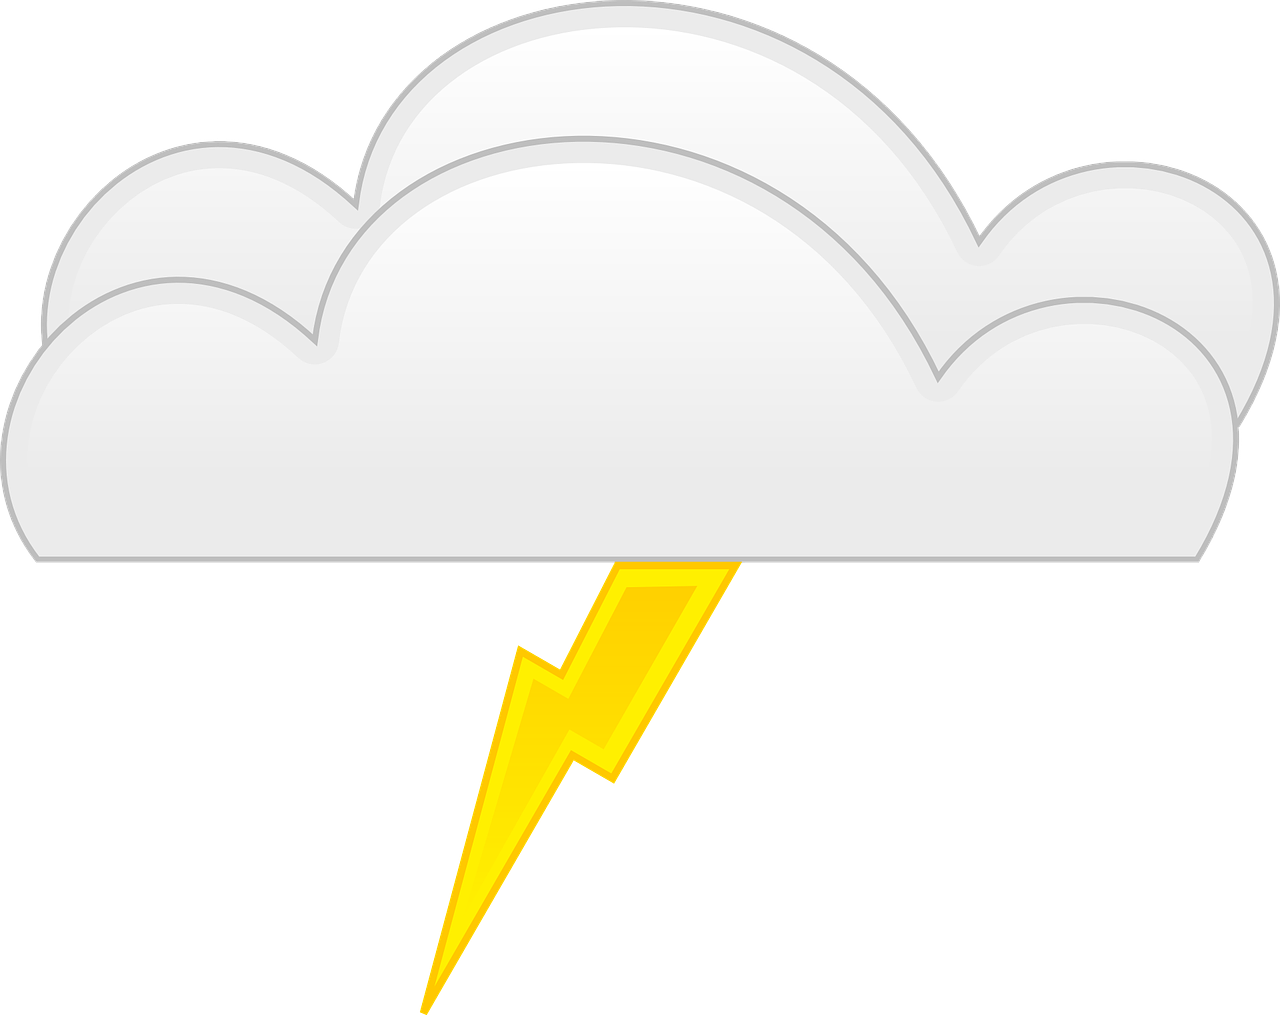 lightning bolt yellow free photo